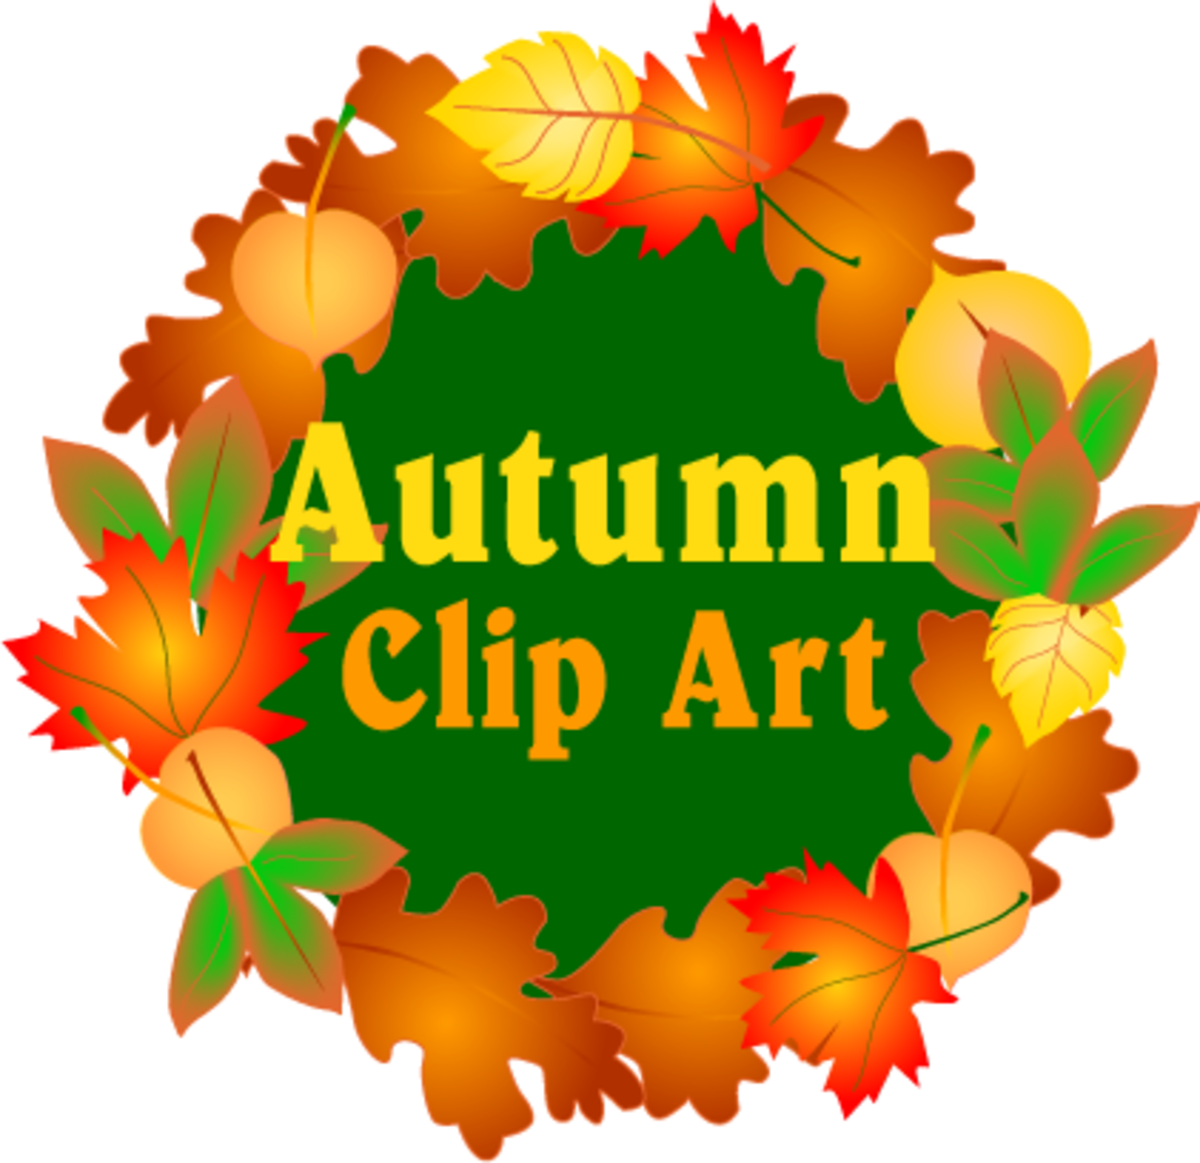 Autumn Clip Art - Fall Season Graphics